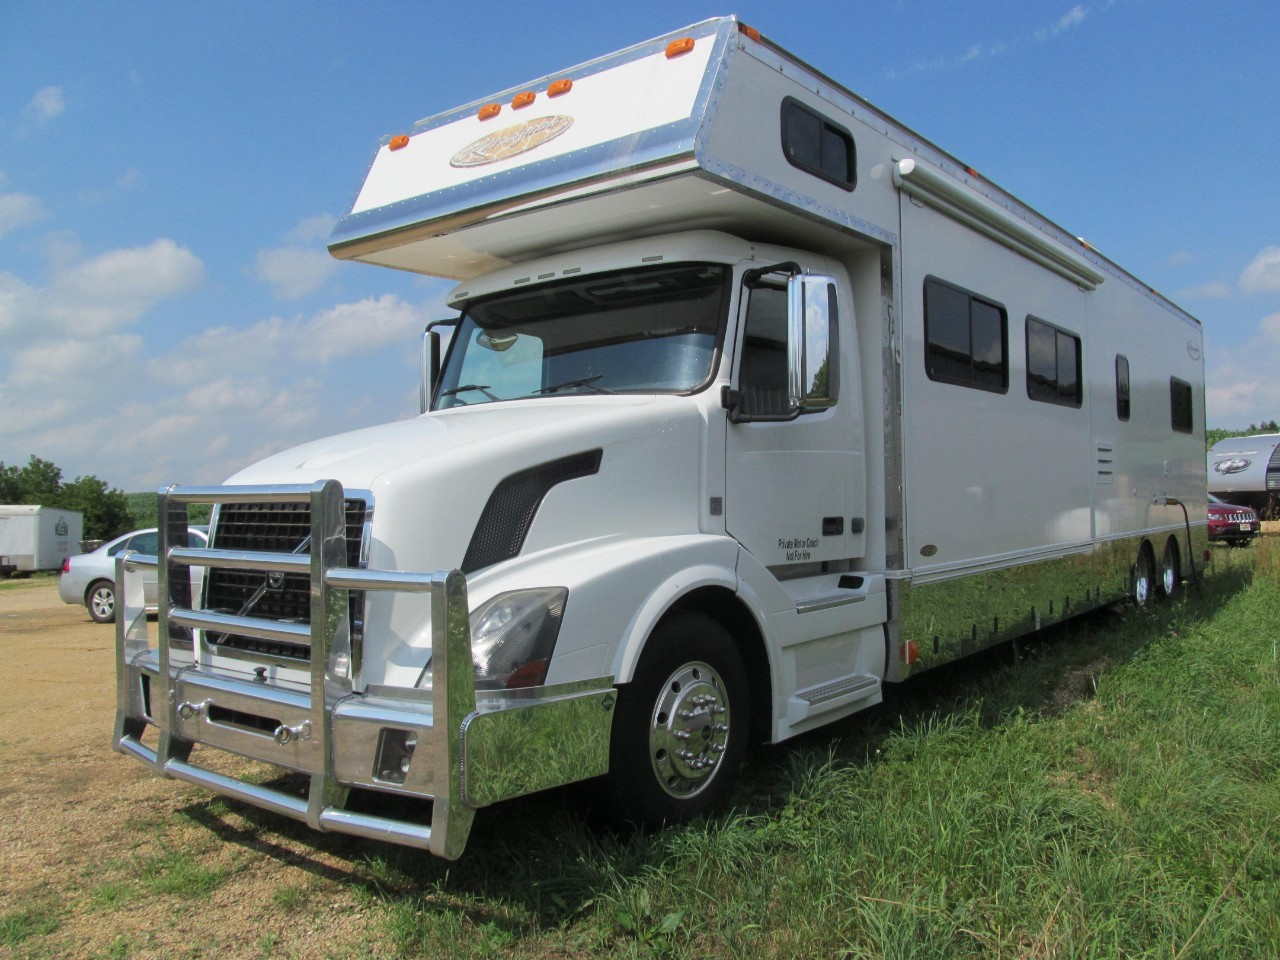 Classic For Sale - Renegade Class C Motorhomes - RV Trader